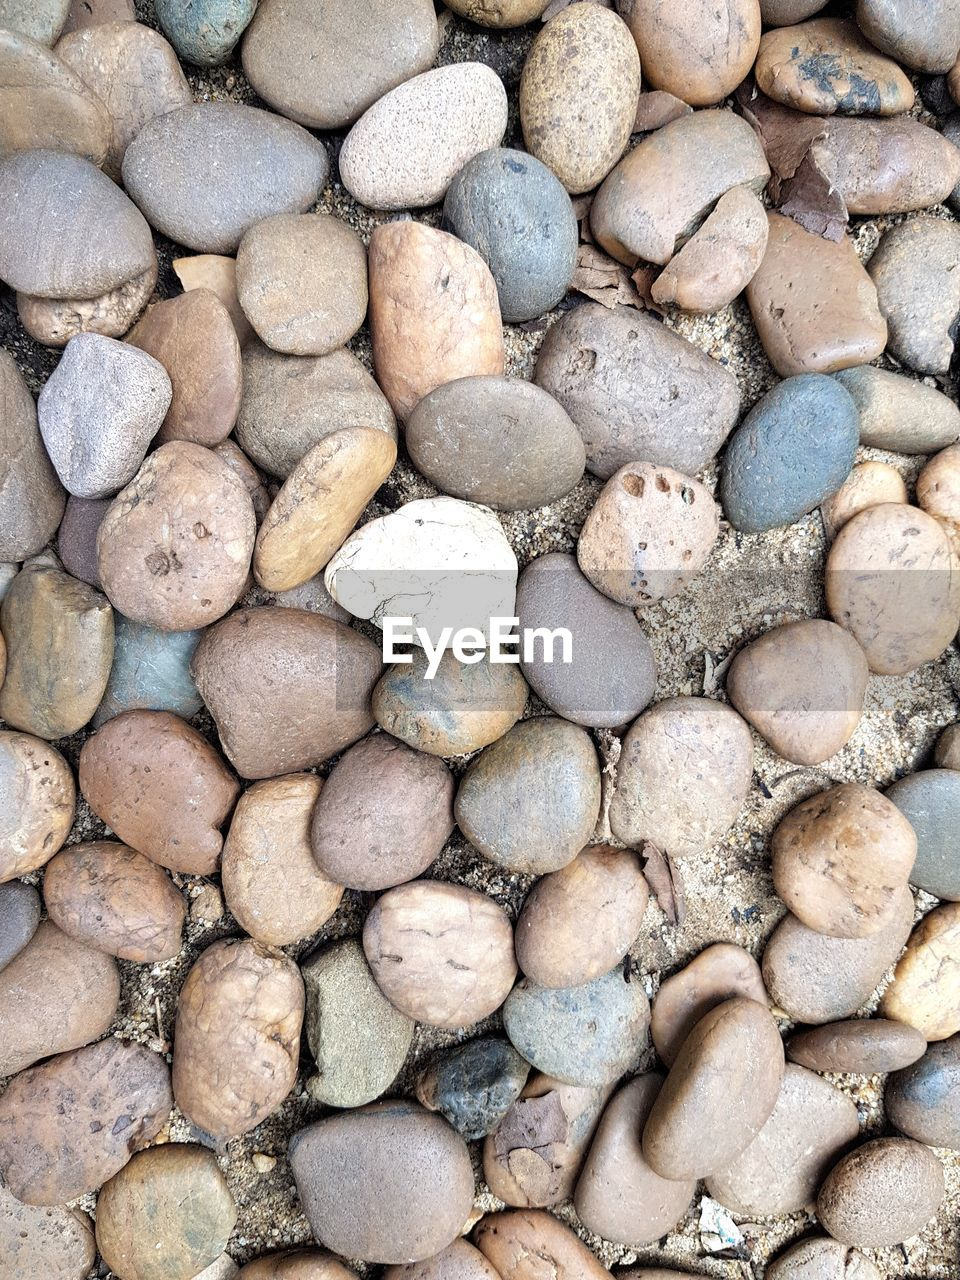 solid, backgrounds, full frame, rock, large group of objects, stone - object, stone, no people, pebble, abundance, nature, day, rock - object, pattern, land, high angle view, textured, beach, outdoors, rough